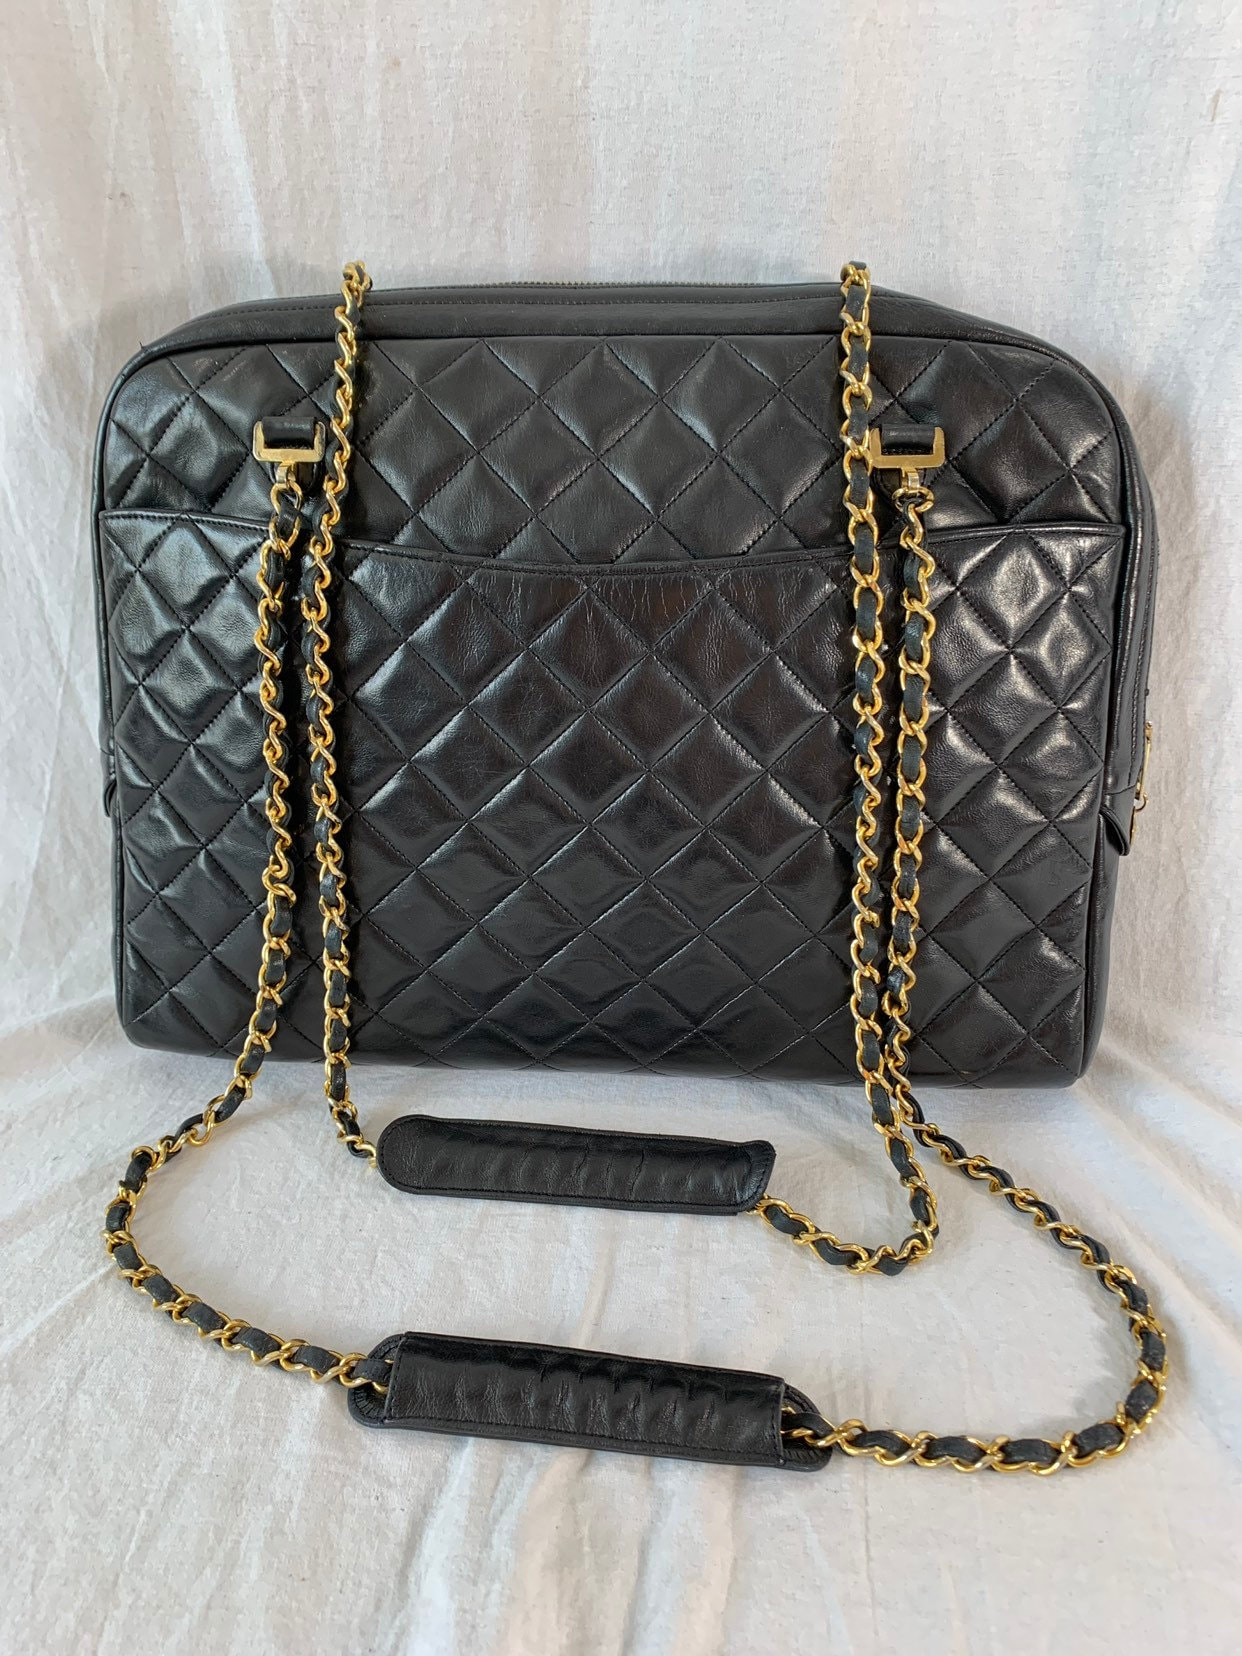 1c37efe63b77 CHANEL Vintage Classic Quilted Black Leather Chain Link Shoulder Bag Purse  Made in France